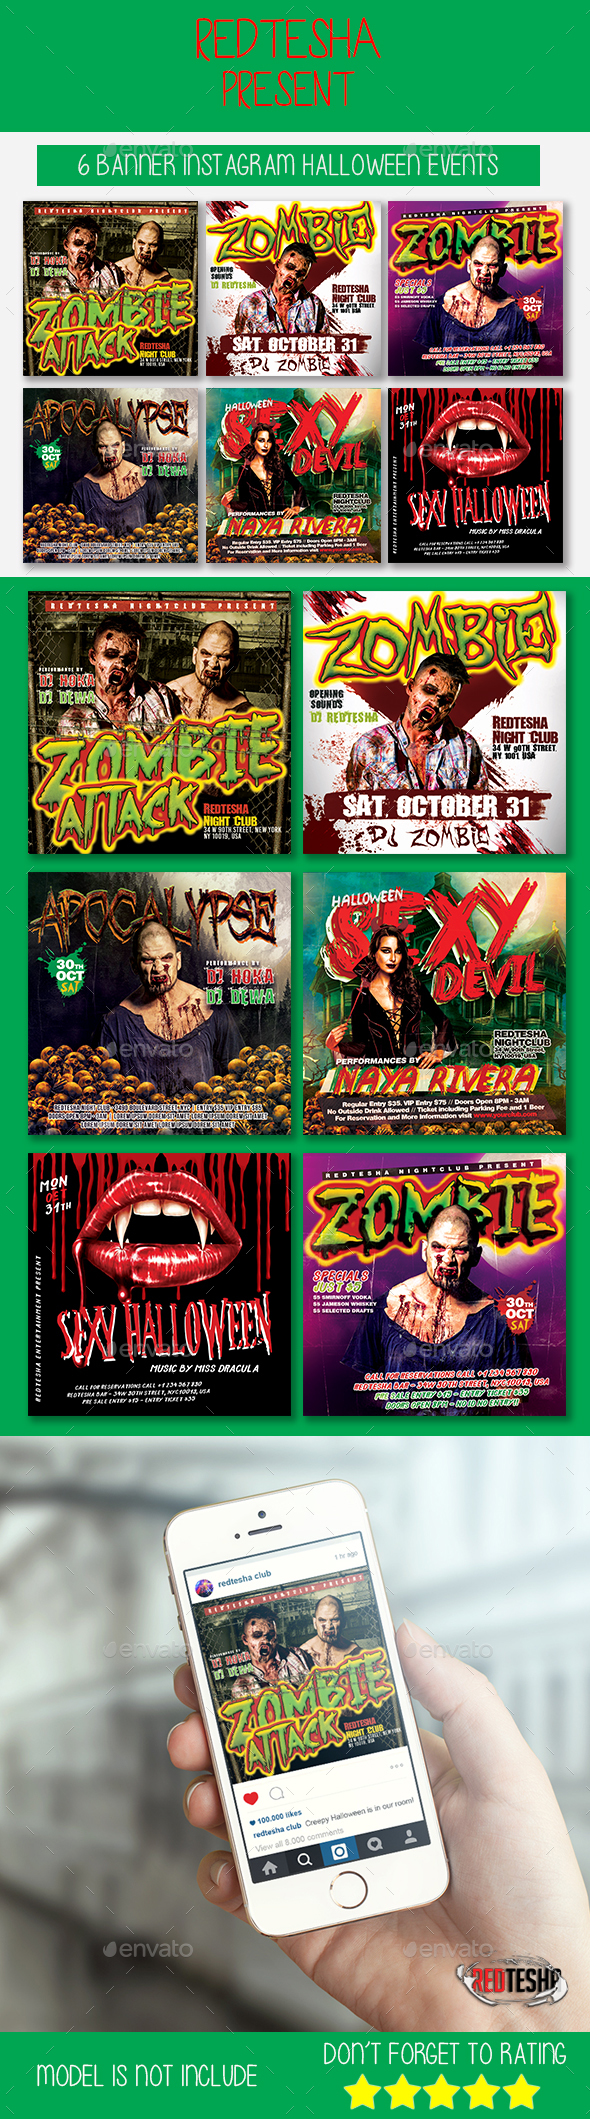 Instagram Banner Halloween Events - Banners & Ads Web Elements